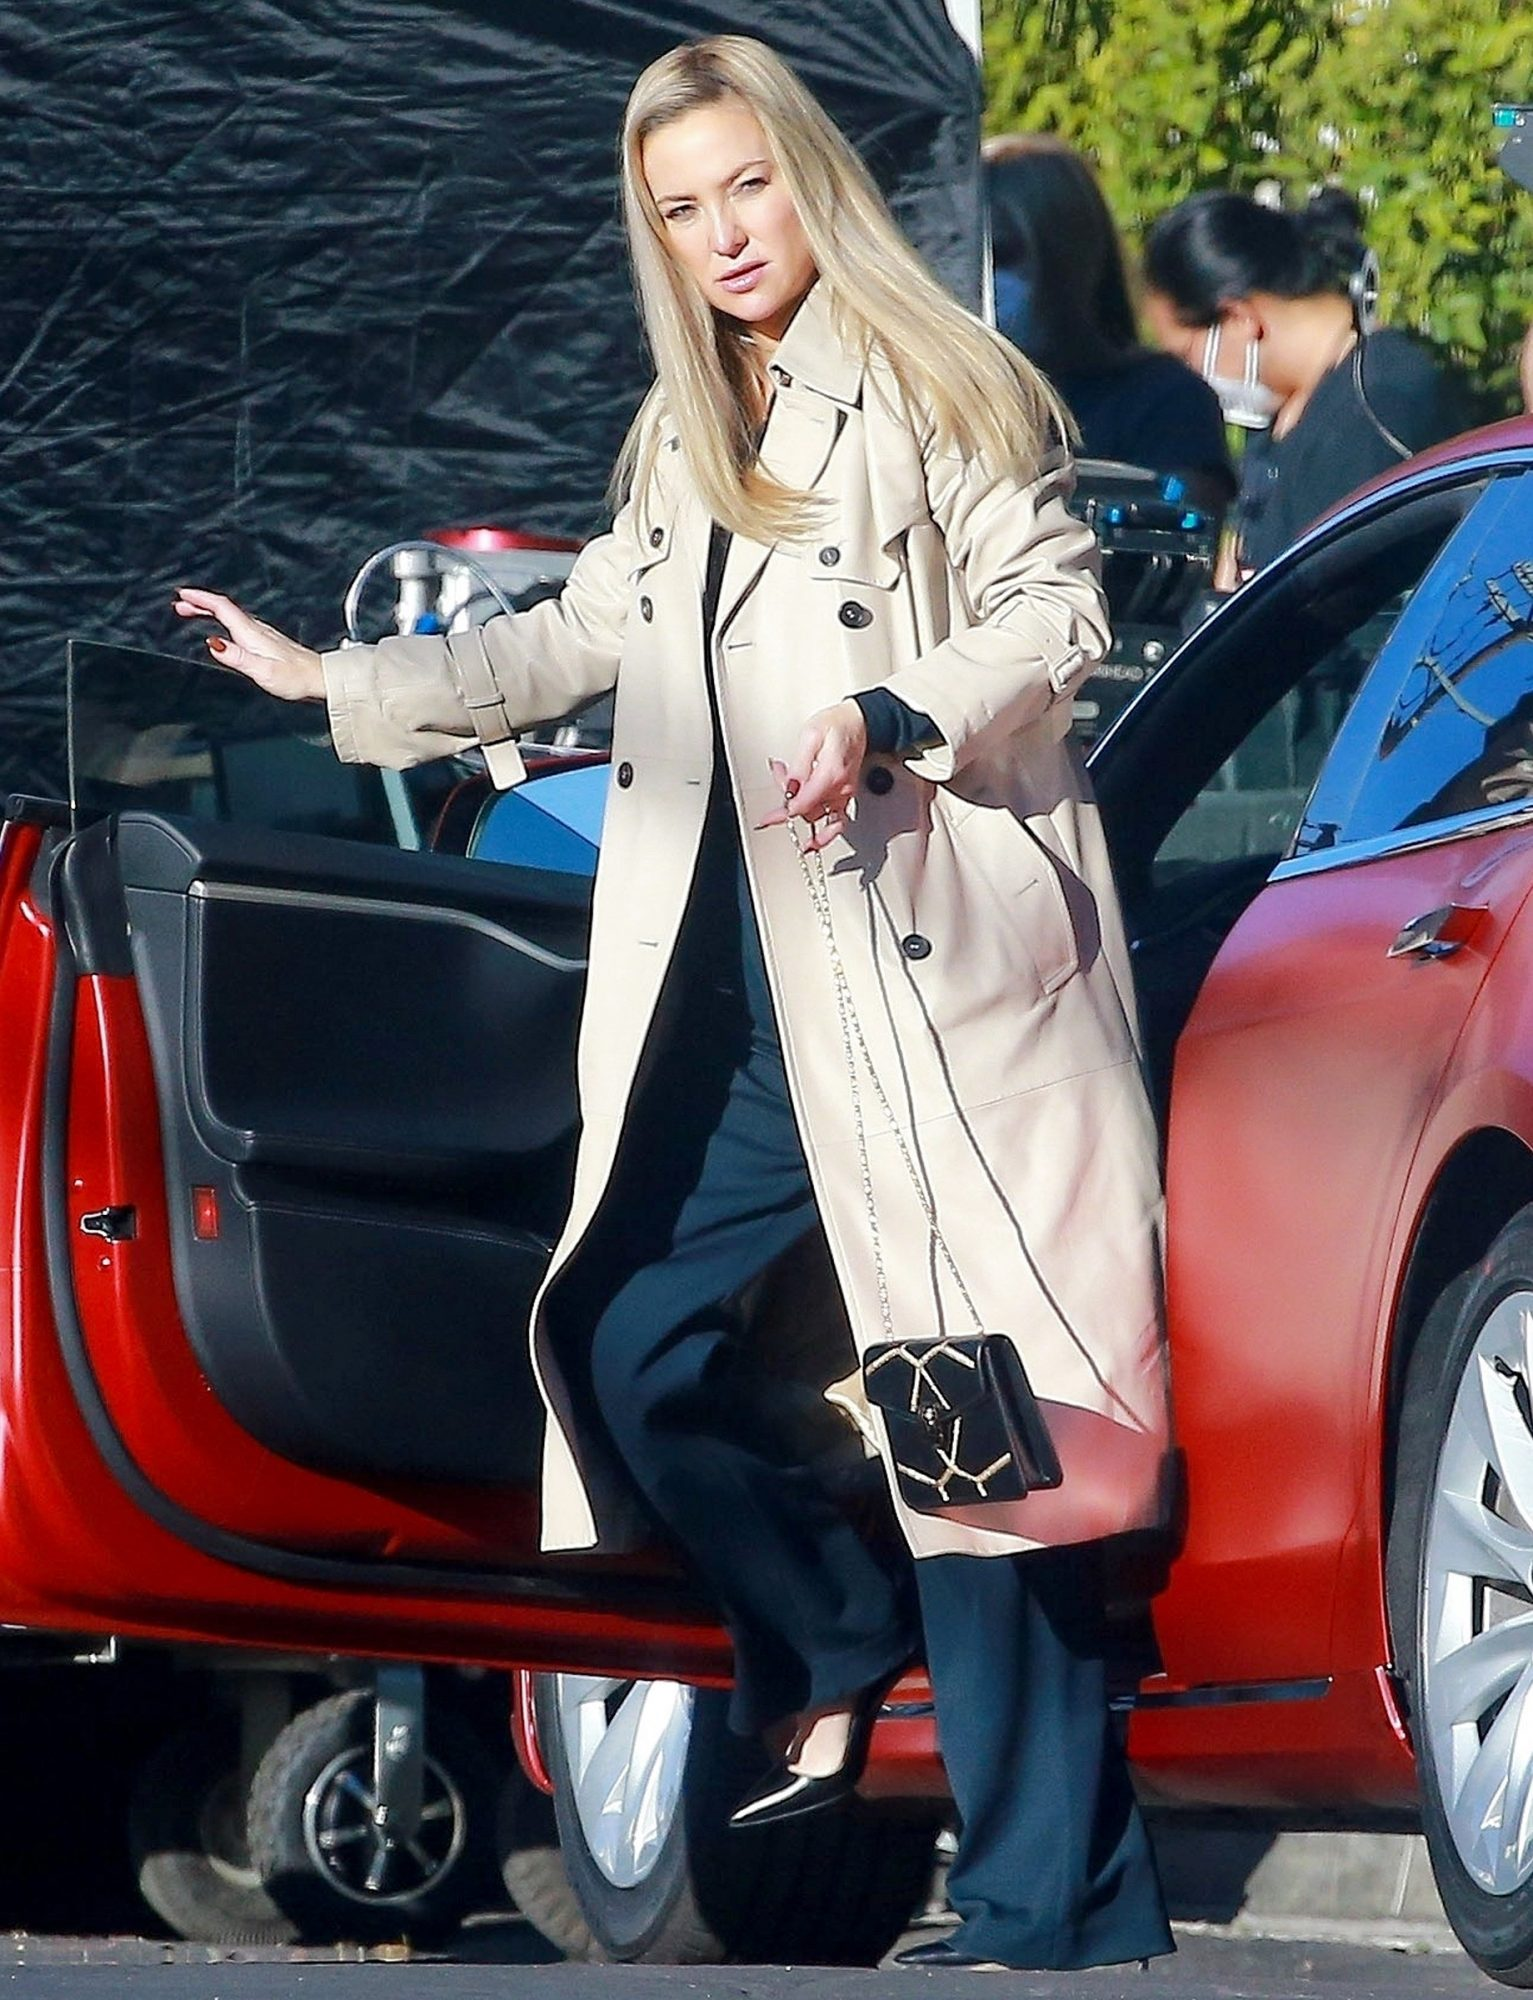 Kate Hudson continues filming scenes for 'Truth Be Told' in LA